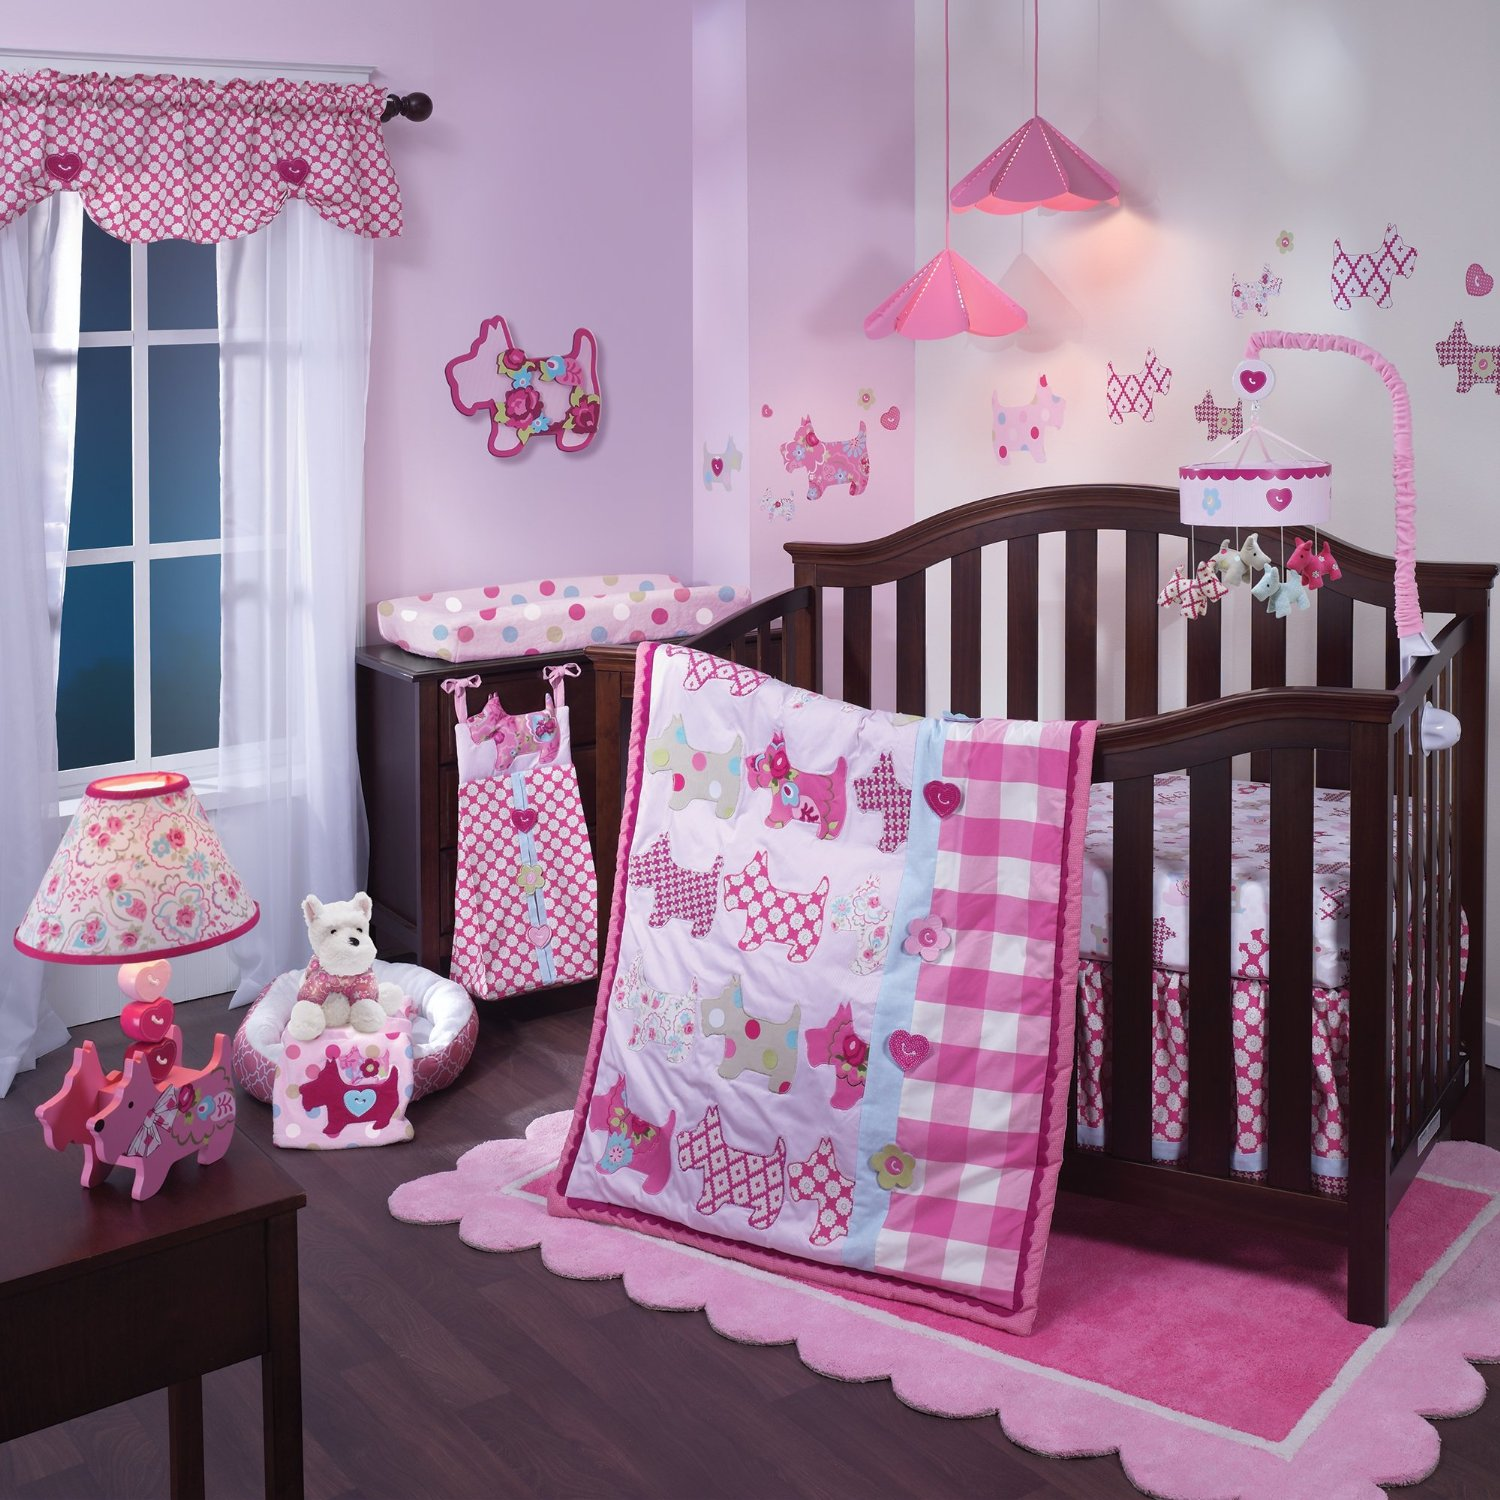 Puppy Baby Crib Bedding